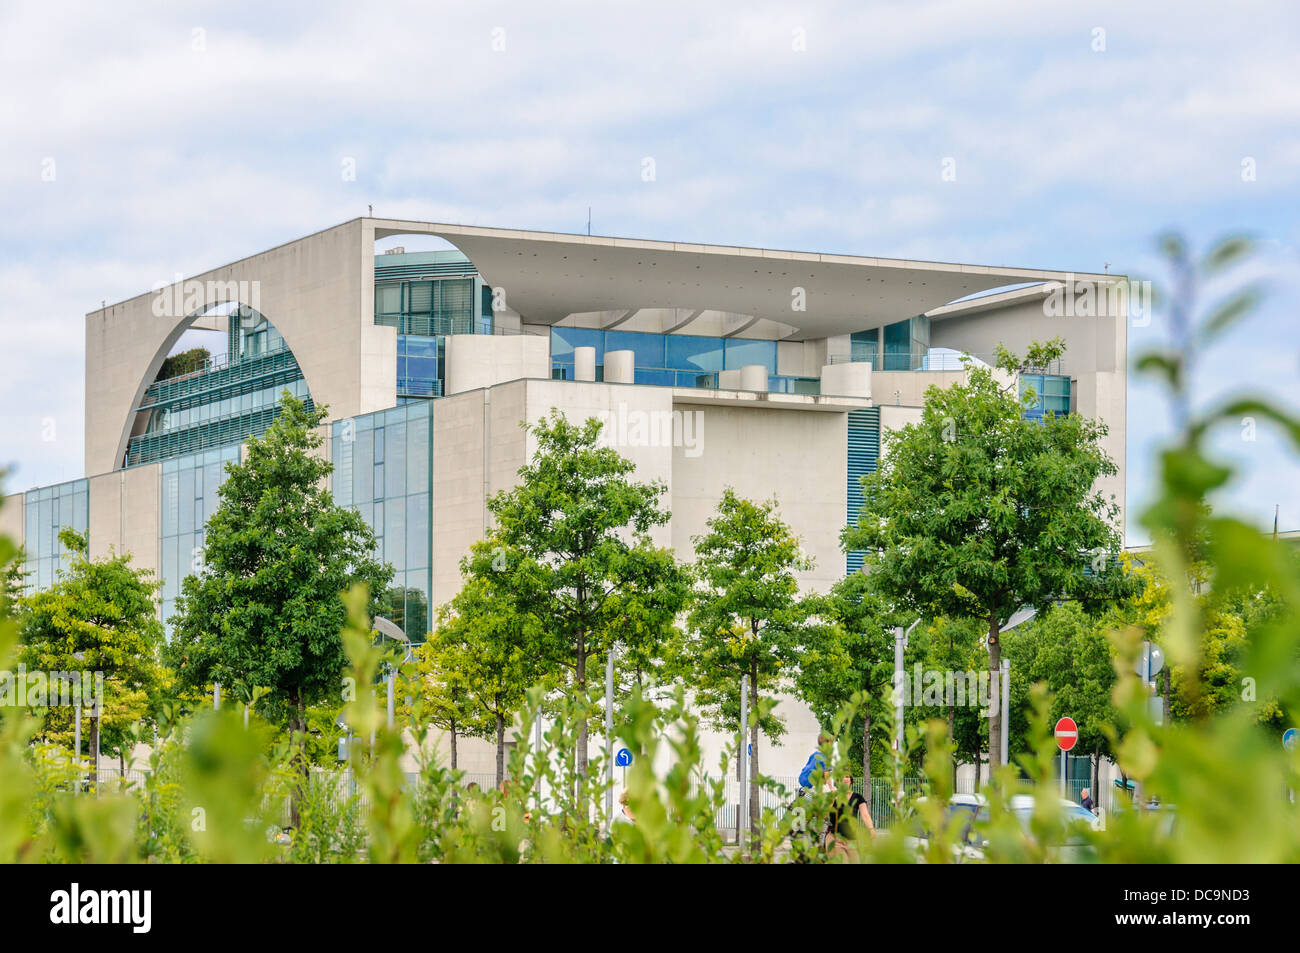 Backside of the Chancellery of the Federal Republic of Germany, Berlin Stock Photo